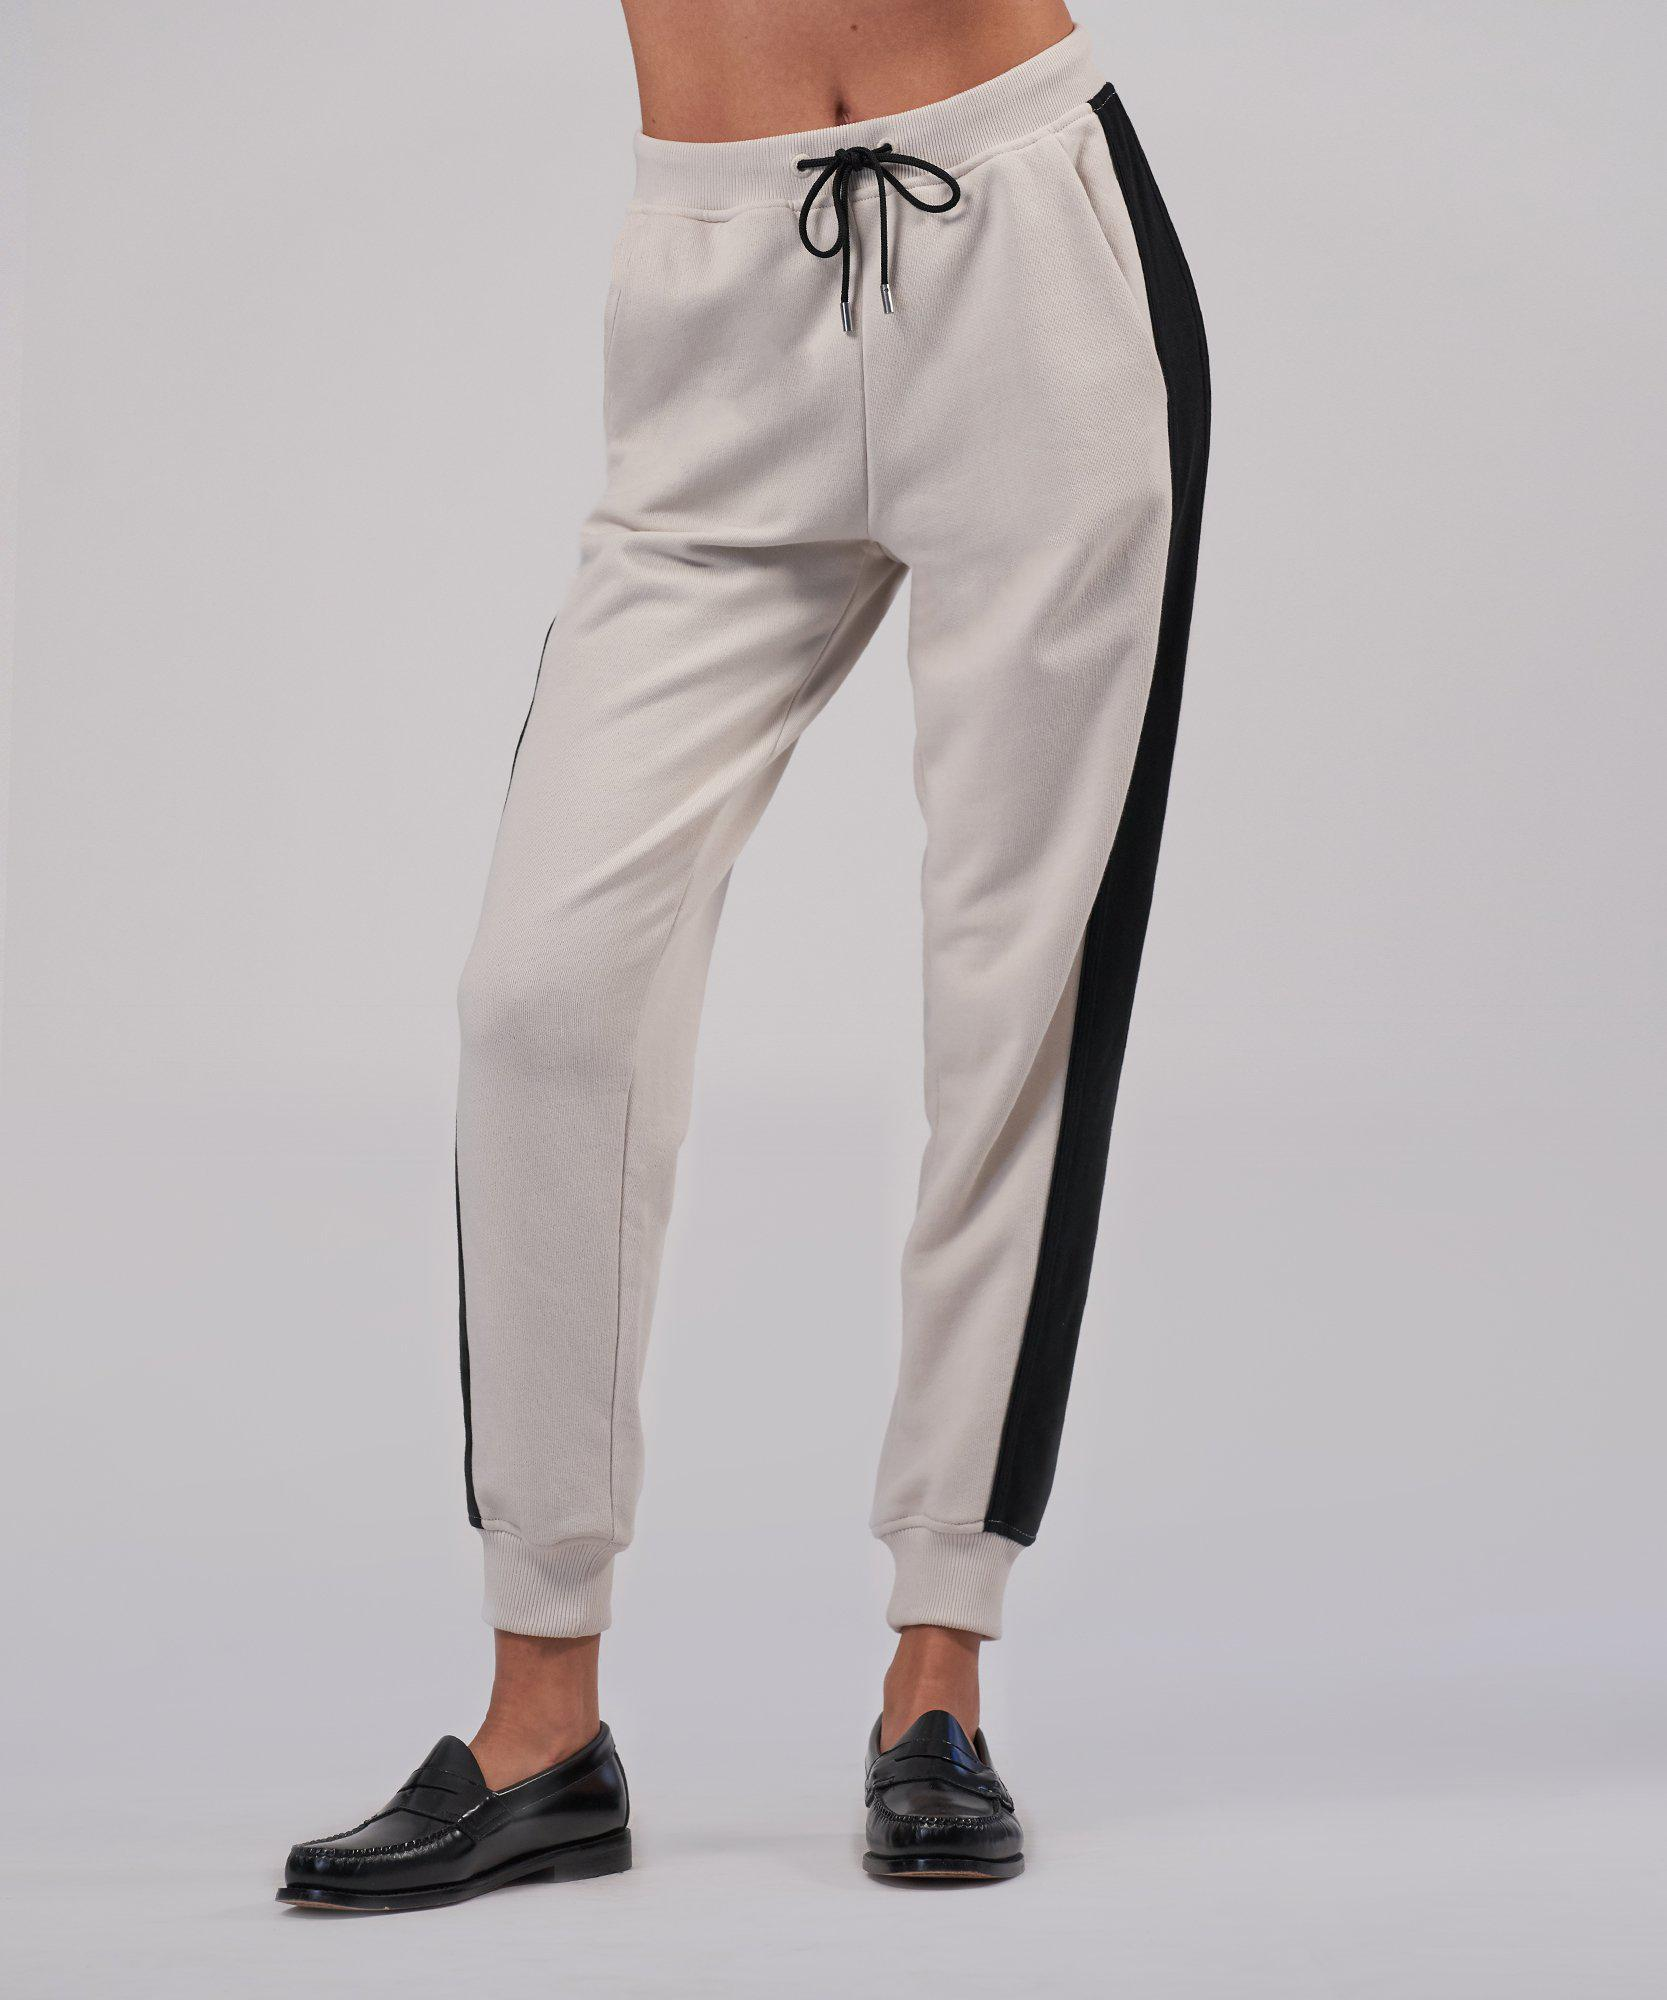 French Terry Racing Stripe Pull-On Pants - Tan Combo